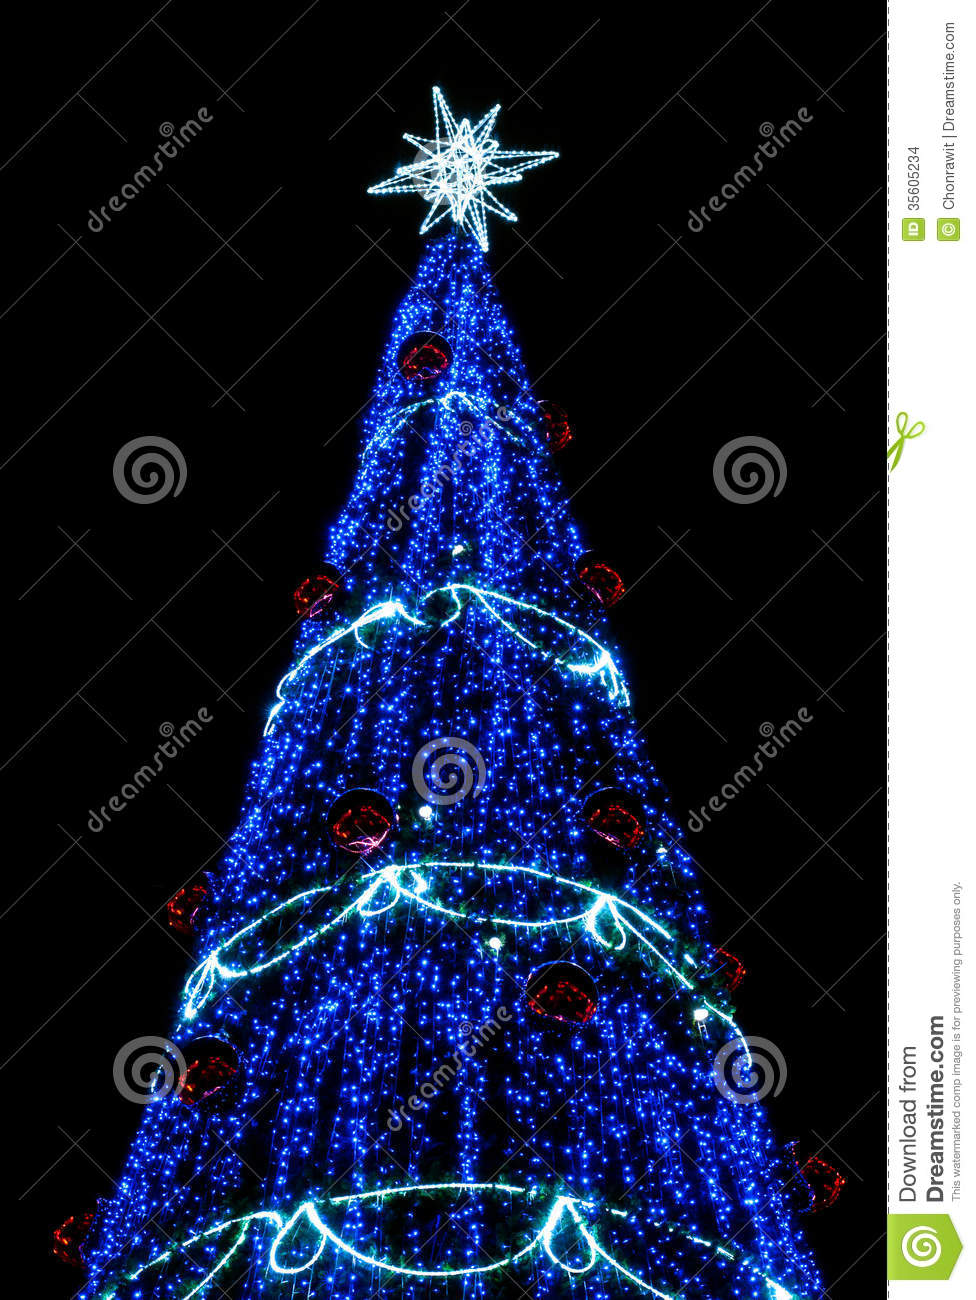 christmas tree with blue light - Christmas Tree With Blue Lights